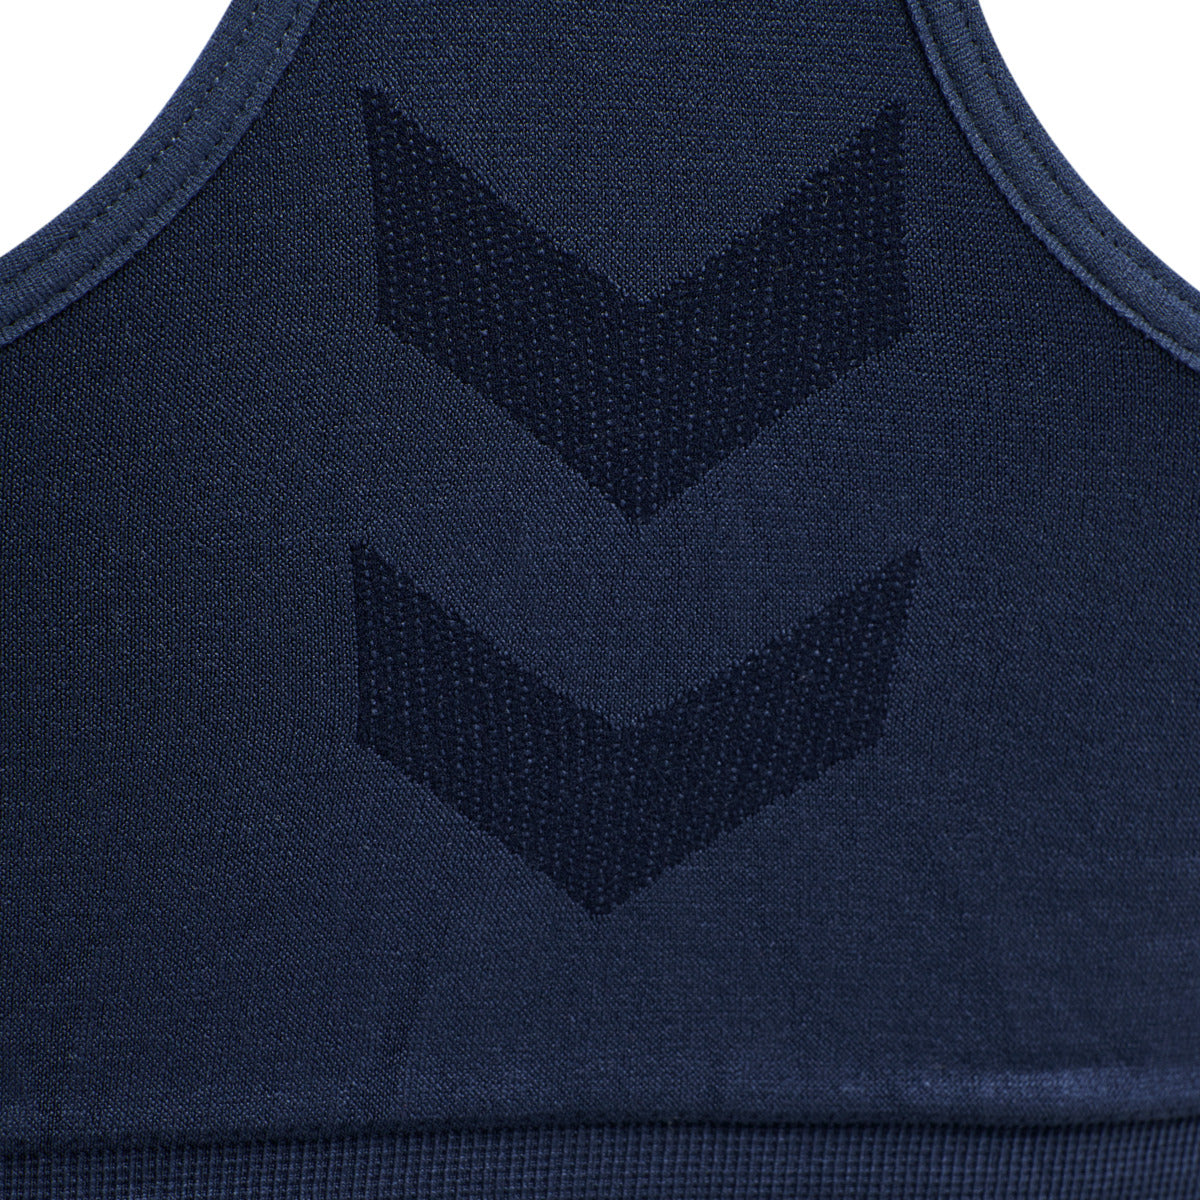 HUMMEL - TIF SEAMLESS SPORTS TOP NAVY